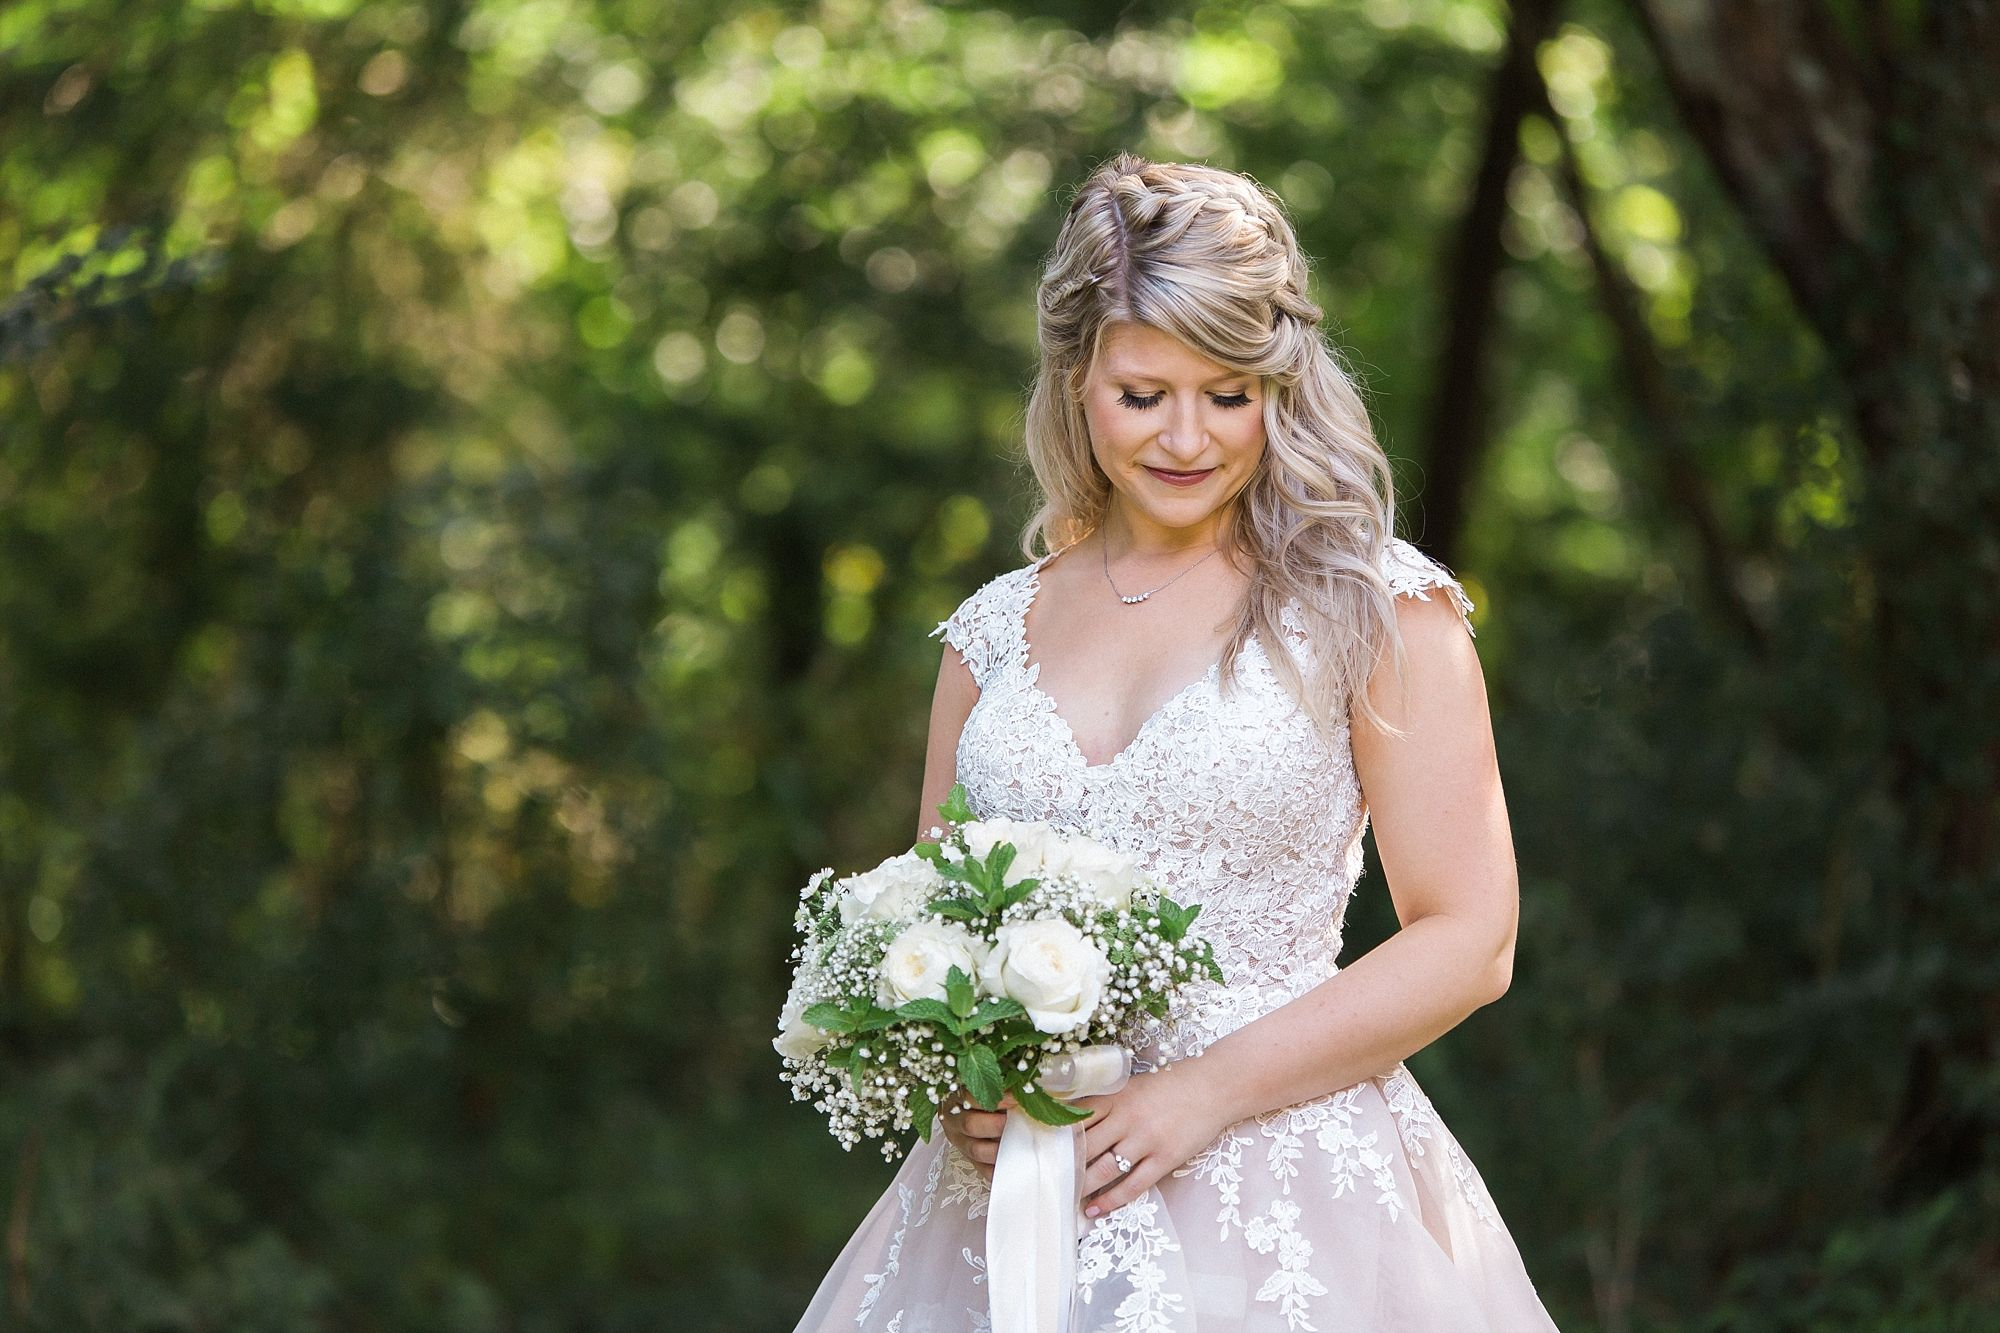 gorgeous bride, the perfect gown. backyard, garden wedding in